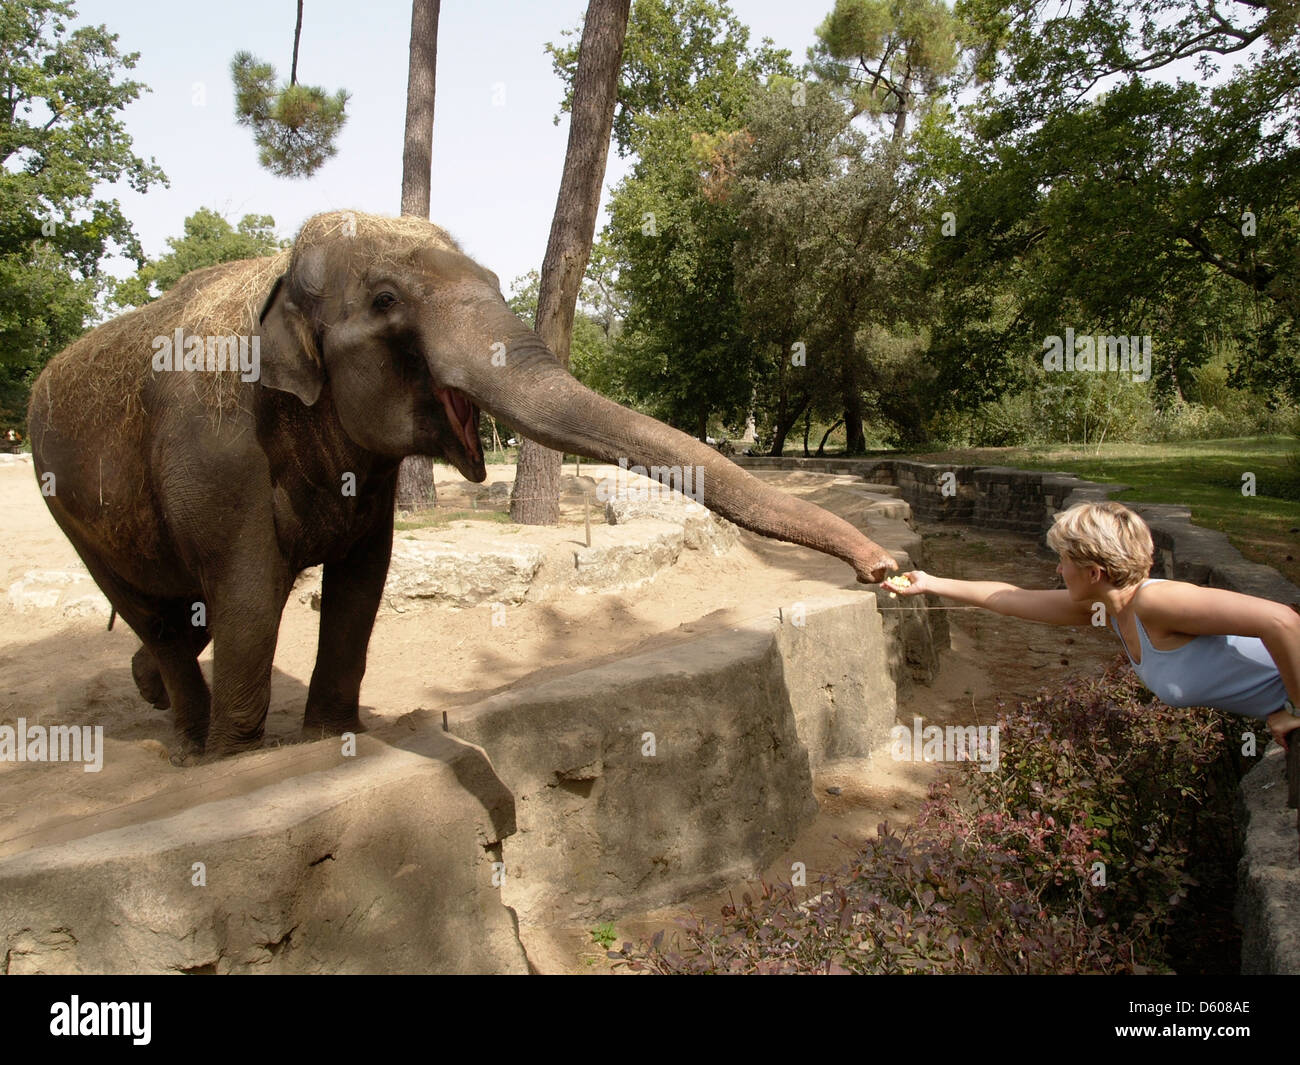 Woman feeding popcorn to an elephant in the La Palmyre zoo, Charente Maritime, France - Stock Image